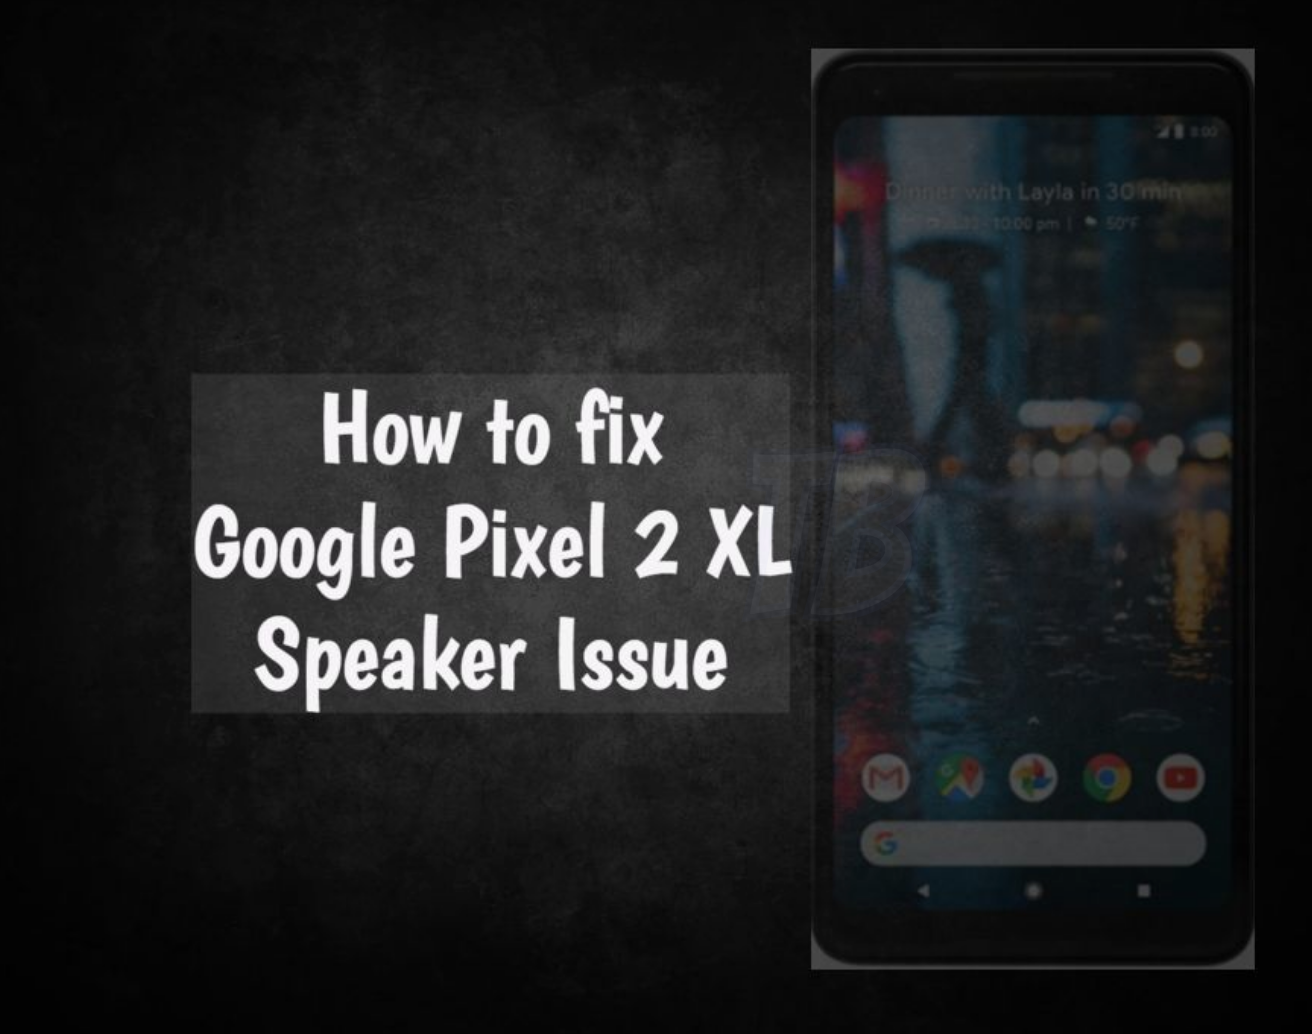 Google Pixel 2 XL Speaker Issue